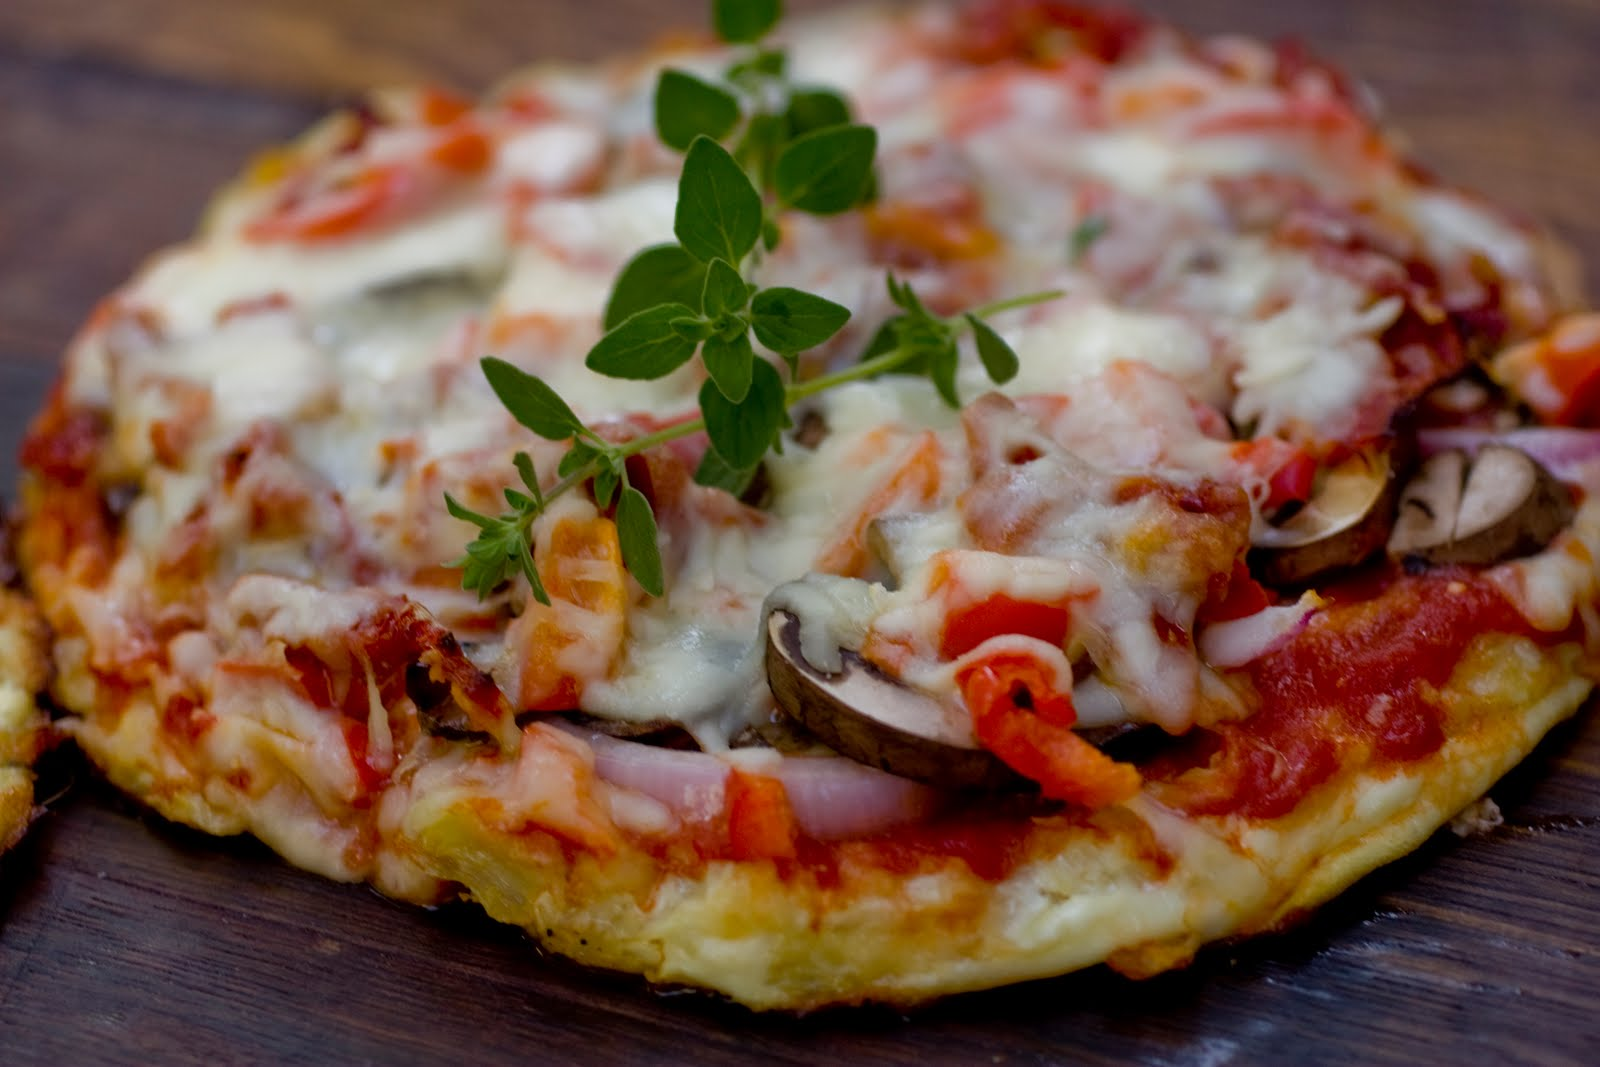 Click image for larger version.   Name: cauliflower pizza3.jpg  Views: 2742  Size: 137.2 KB  ID: 108590